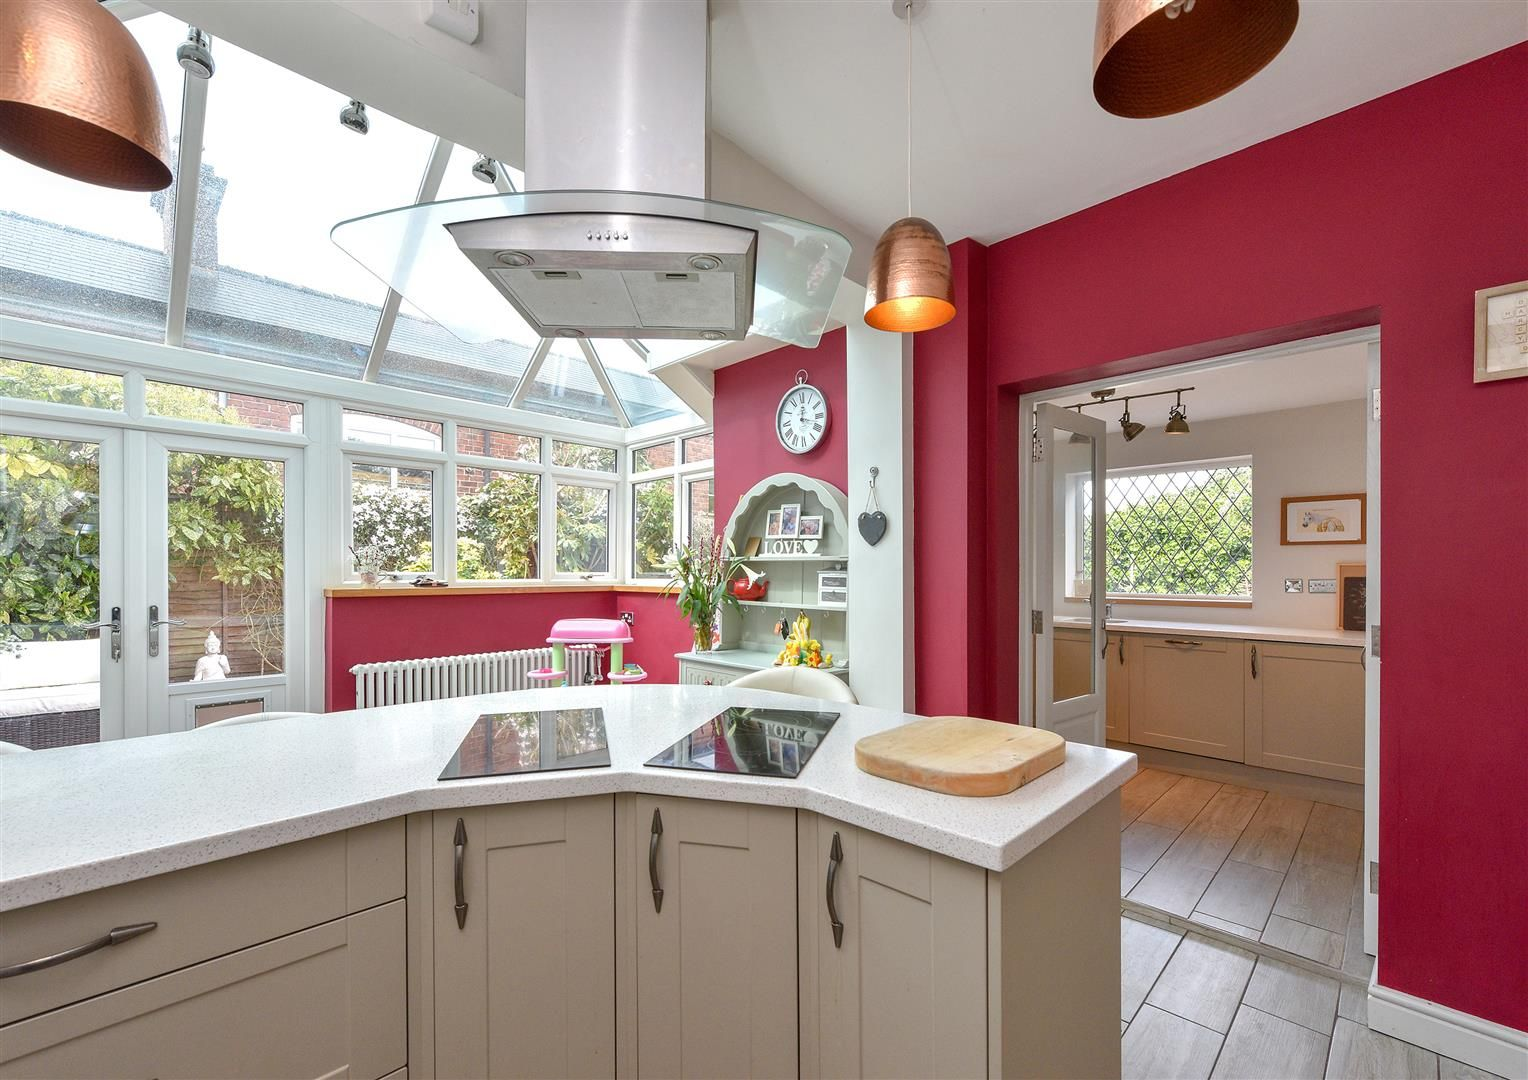 4 bed detached for sale in Swindon  - Property Image 8